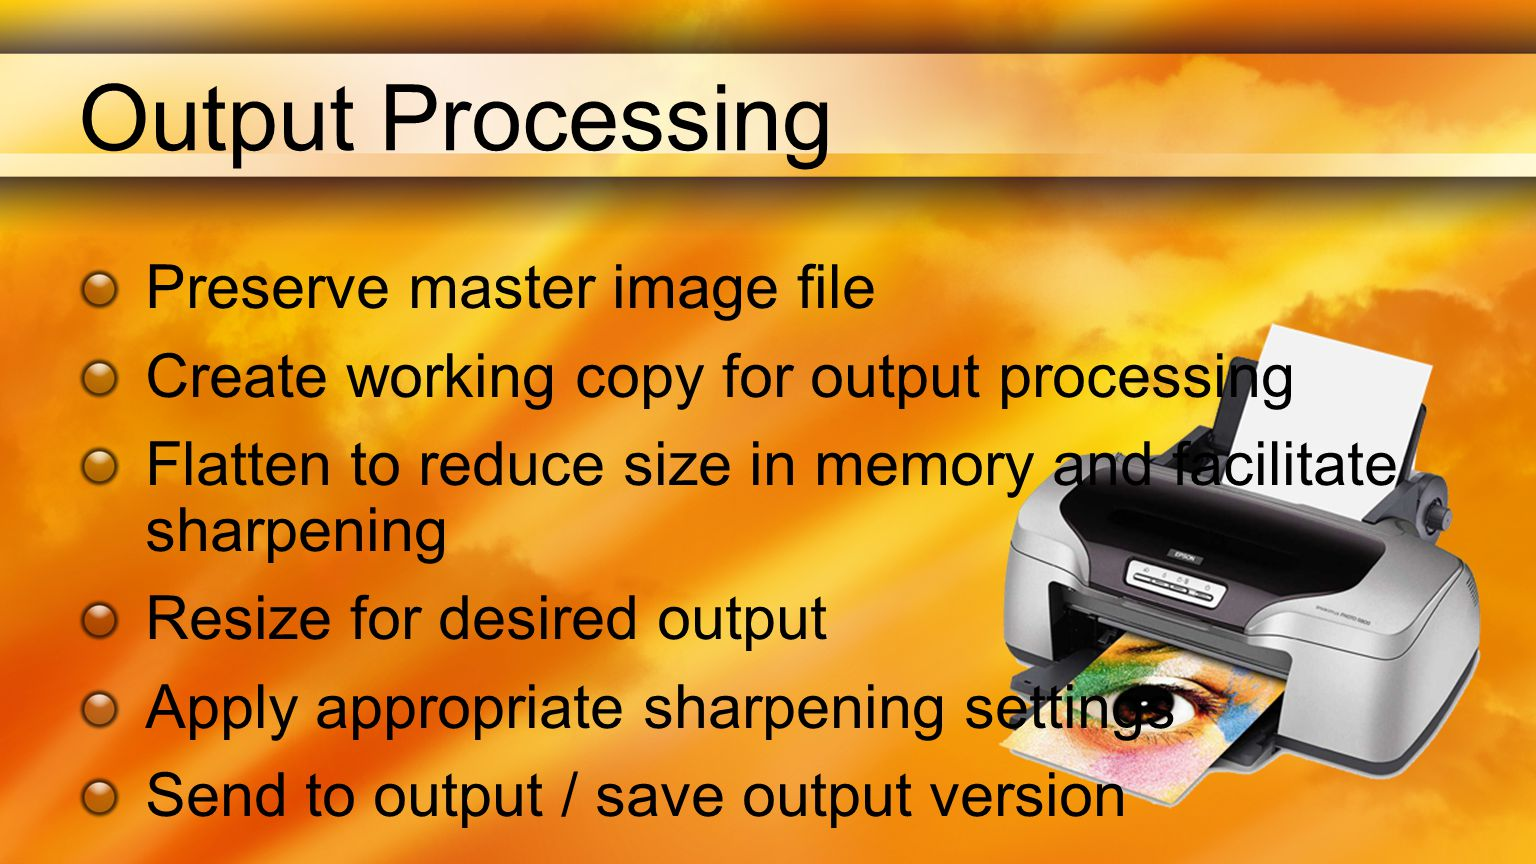 Output Processing Preserve master image file Create working copy for output processing Flatten to reduce size in memory and facilitate sharpening Resize for desired output Apply appropriate sharpening settings Send to output / save output version